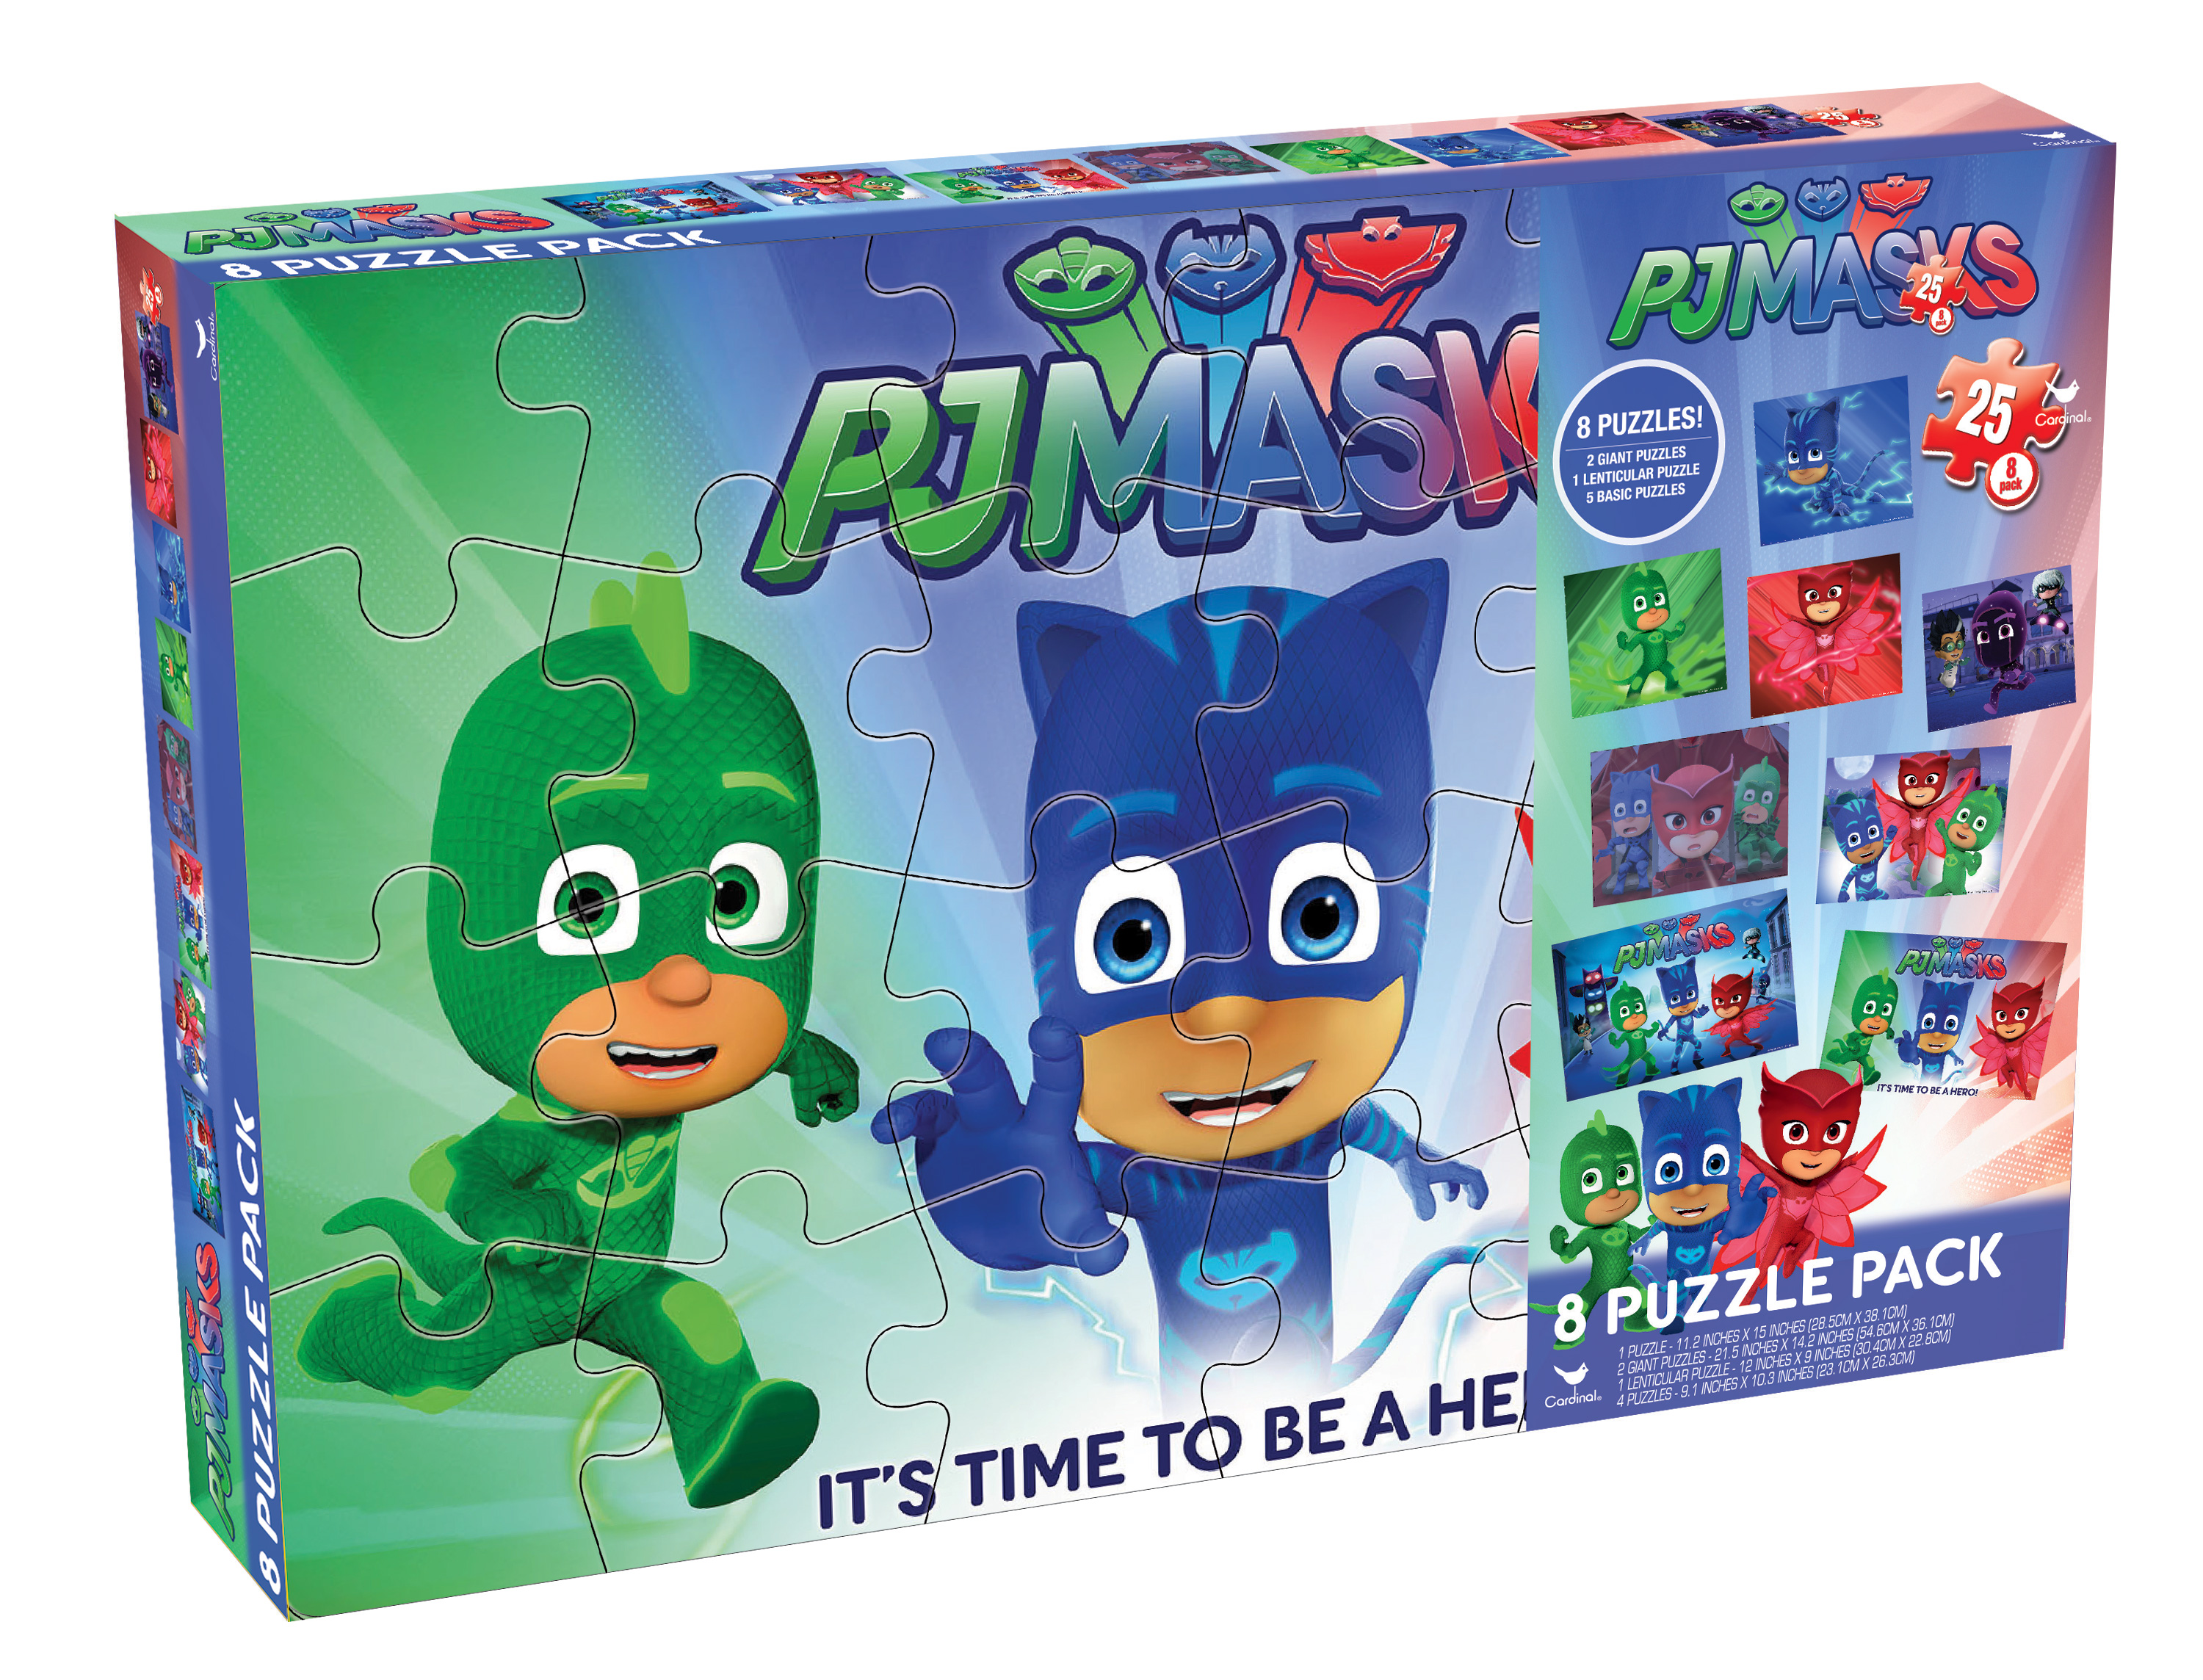 <p>Disneys PJ Masks 8-Pack Puzzle Box< p> by Spin Master Ltd